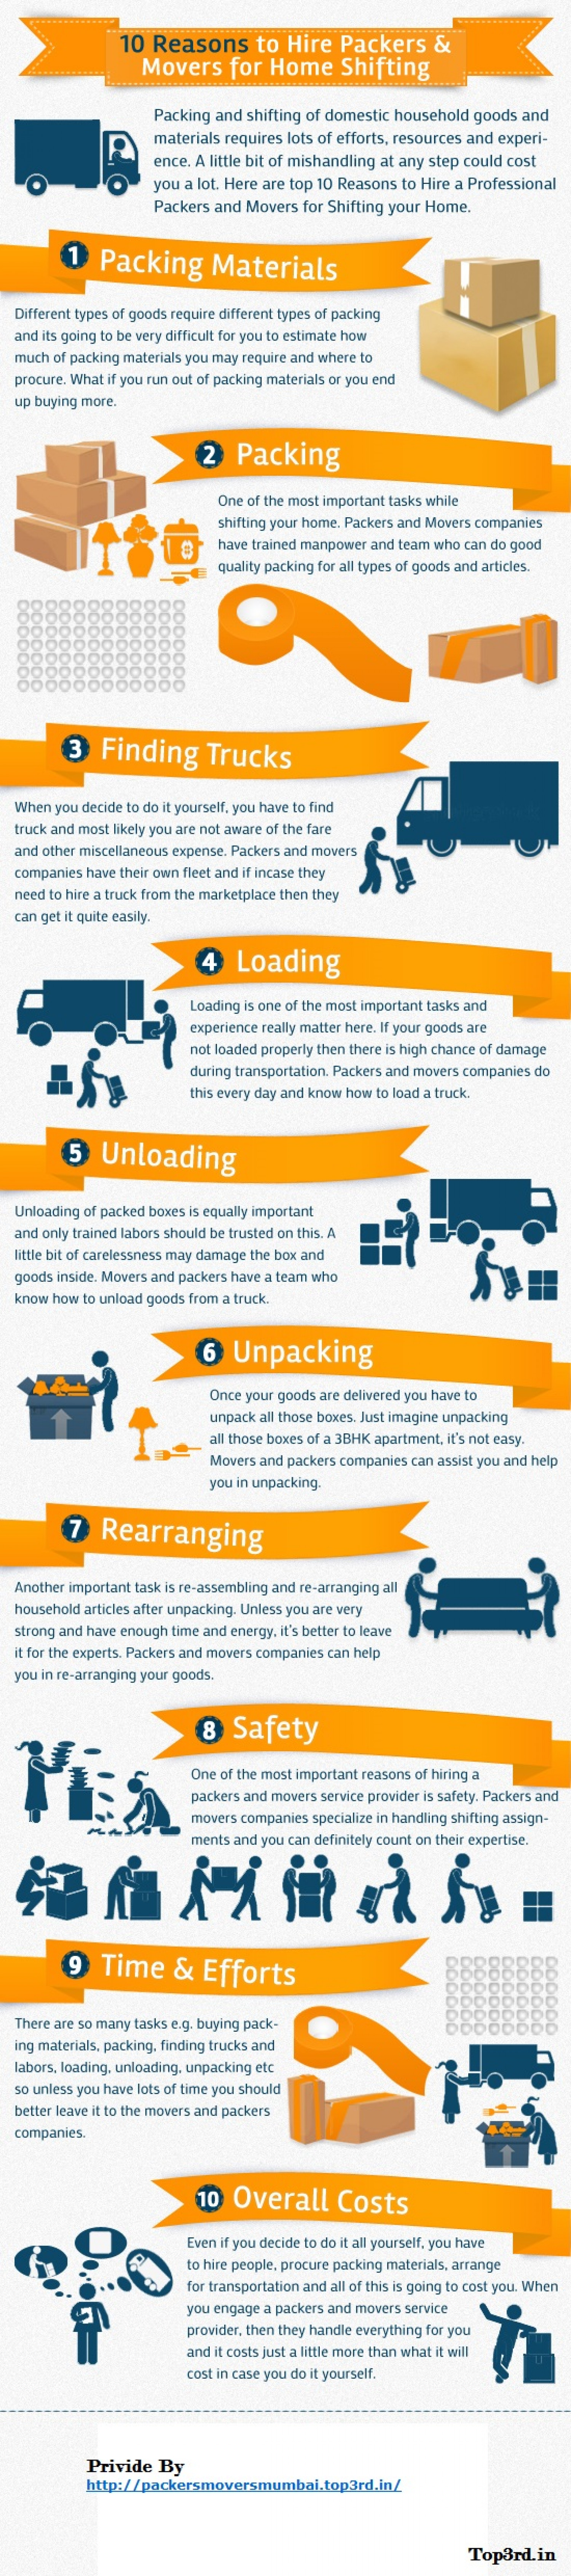 10 Reasons To Hire Packers & Movers For Home Shifting Infographic